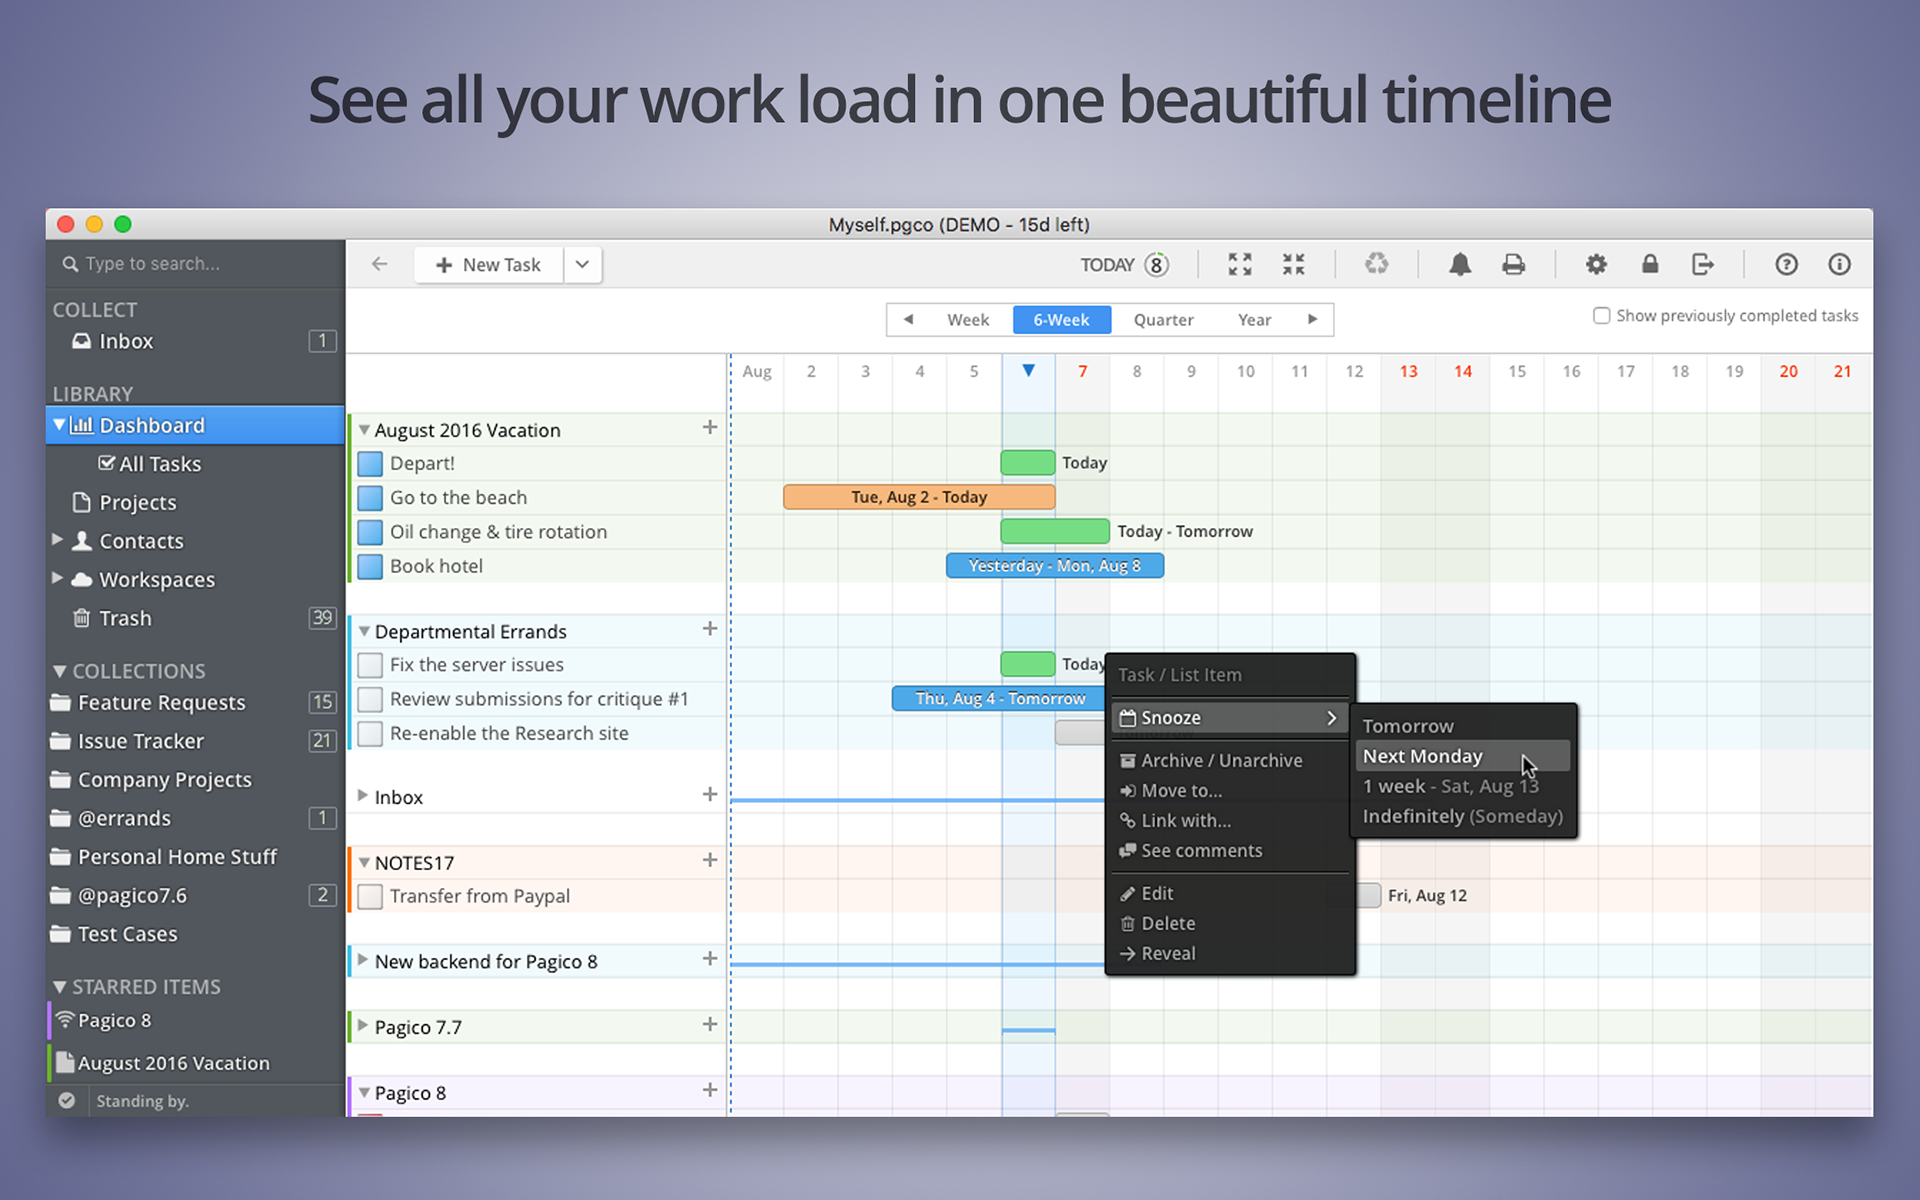 See all your work load in one timeline.